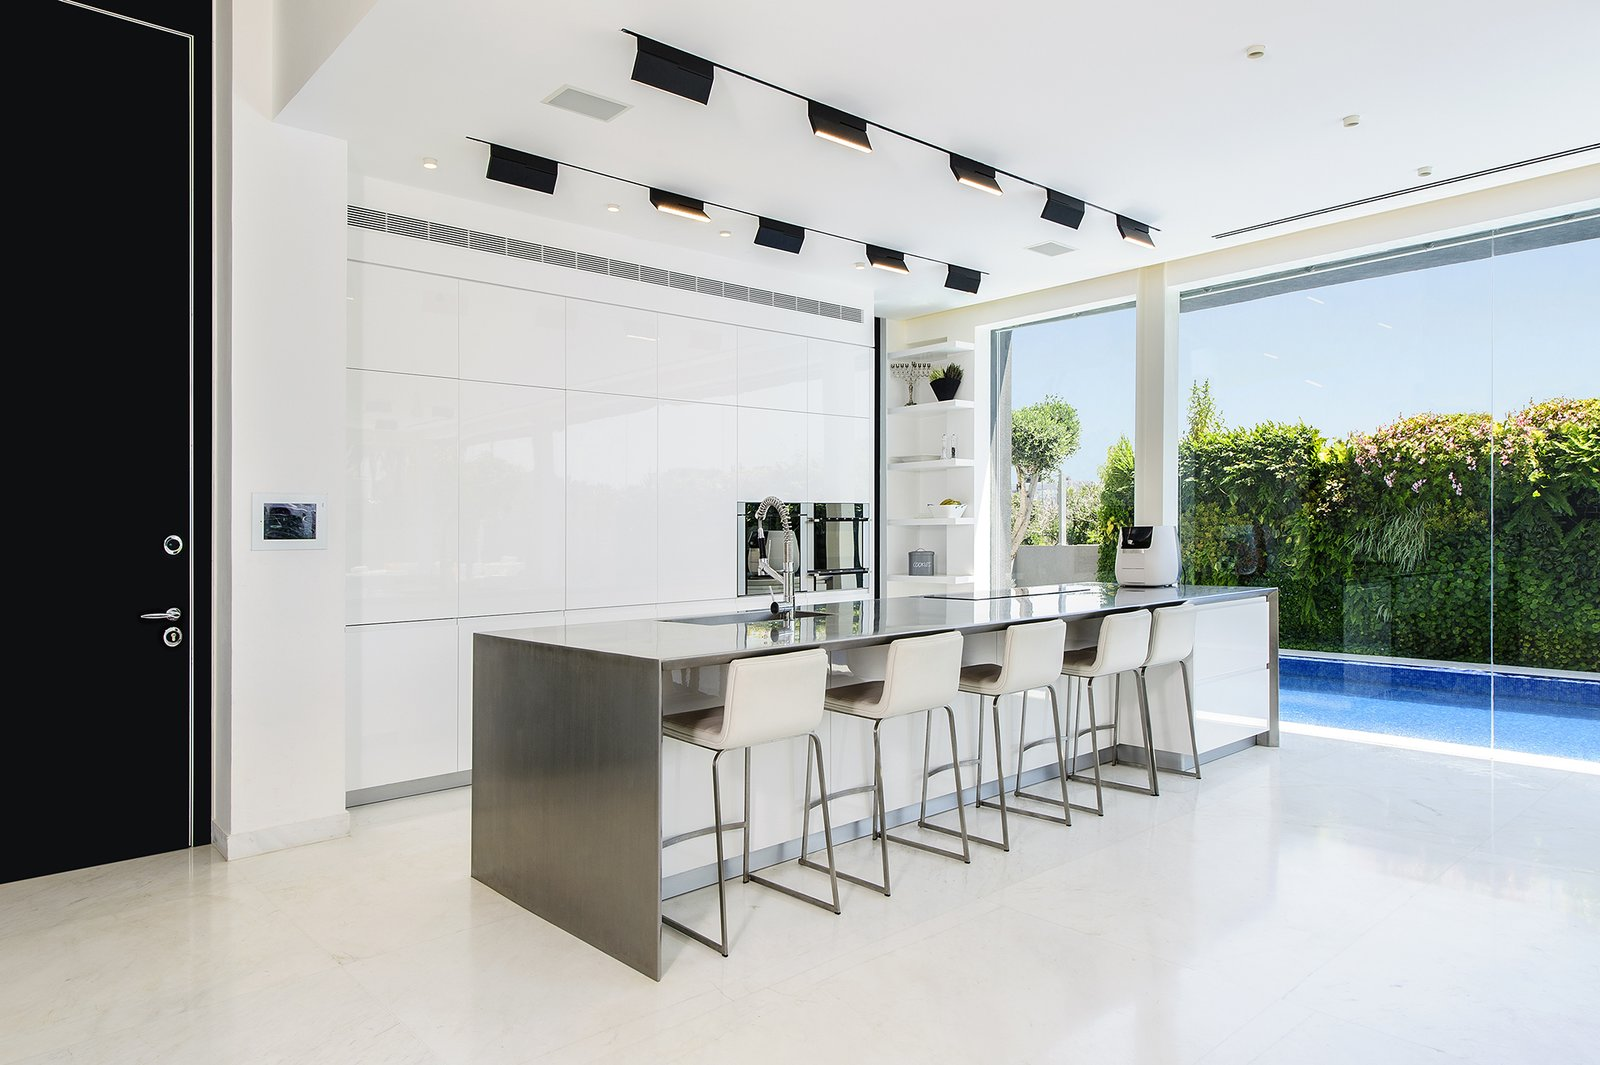 A well-lit and open ground floor with a strong interior-exterior connection was at the top of the family's wish list. The kitchen makes the most of a compact space through its intimate relationship with the adjacent pool and public outdoor space. The spaces features hardware-free white cabinets and a stainless steel center island. The white kitchen floors provide visual continuity with the white pavement directly outside.  Rishon Le Zion 3 by Sarah Akkoush